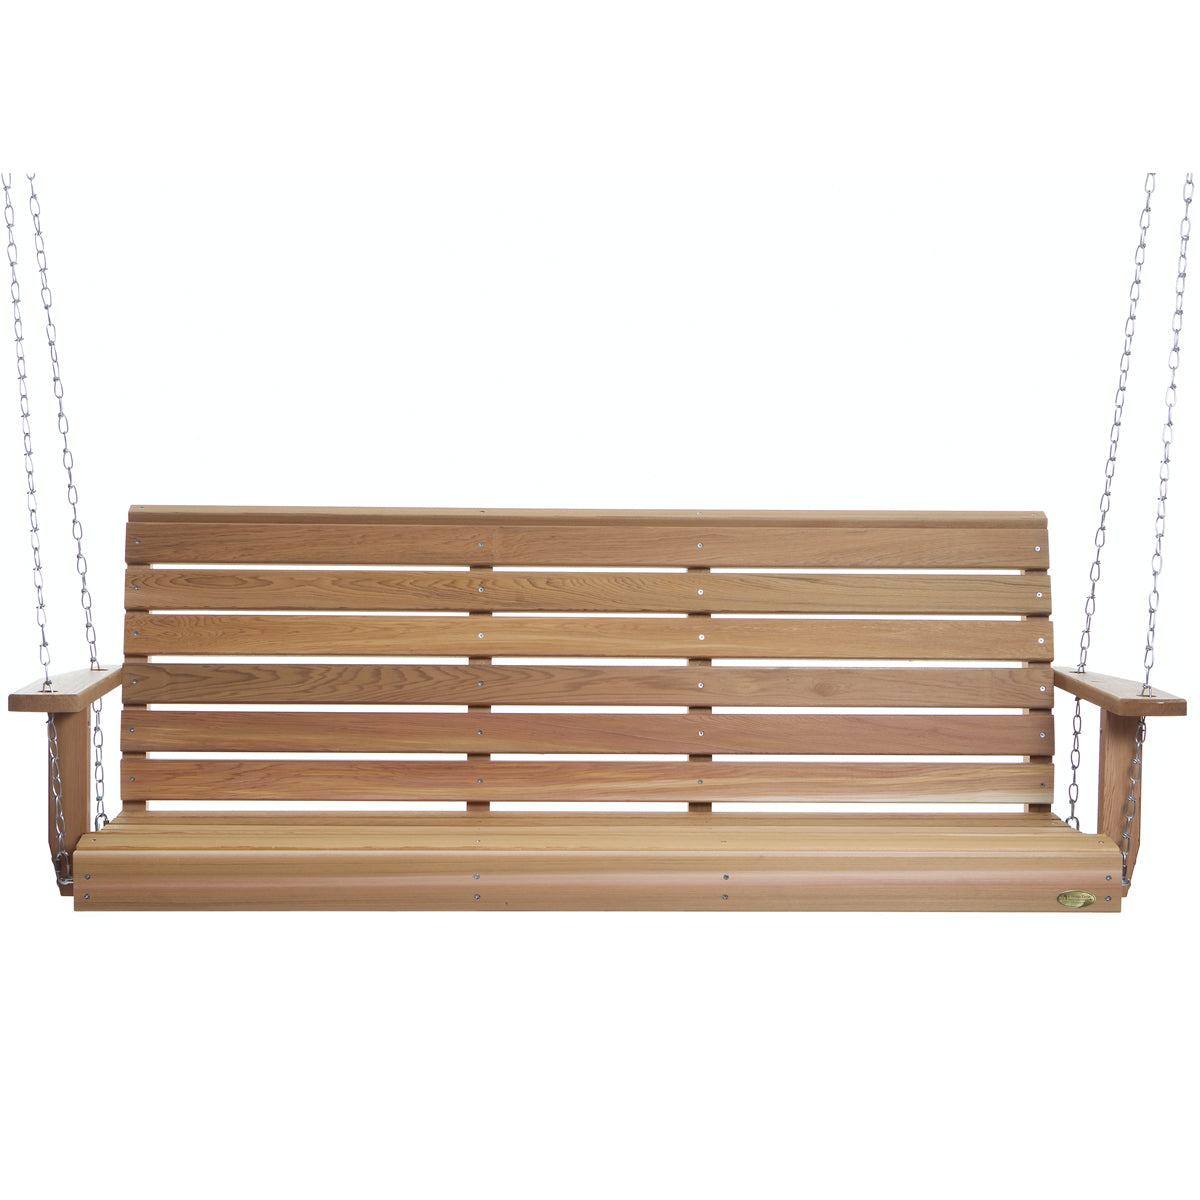 Porch Swing 5' By All Things Cedar - Swings and More